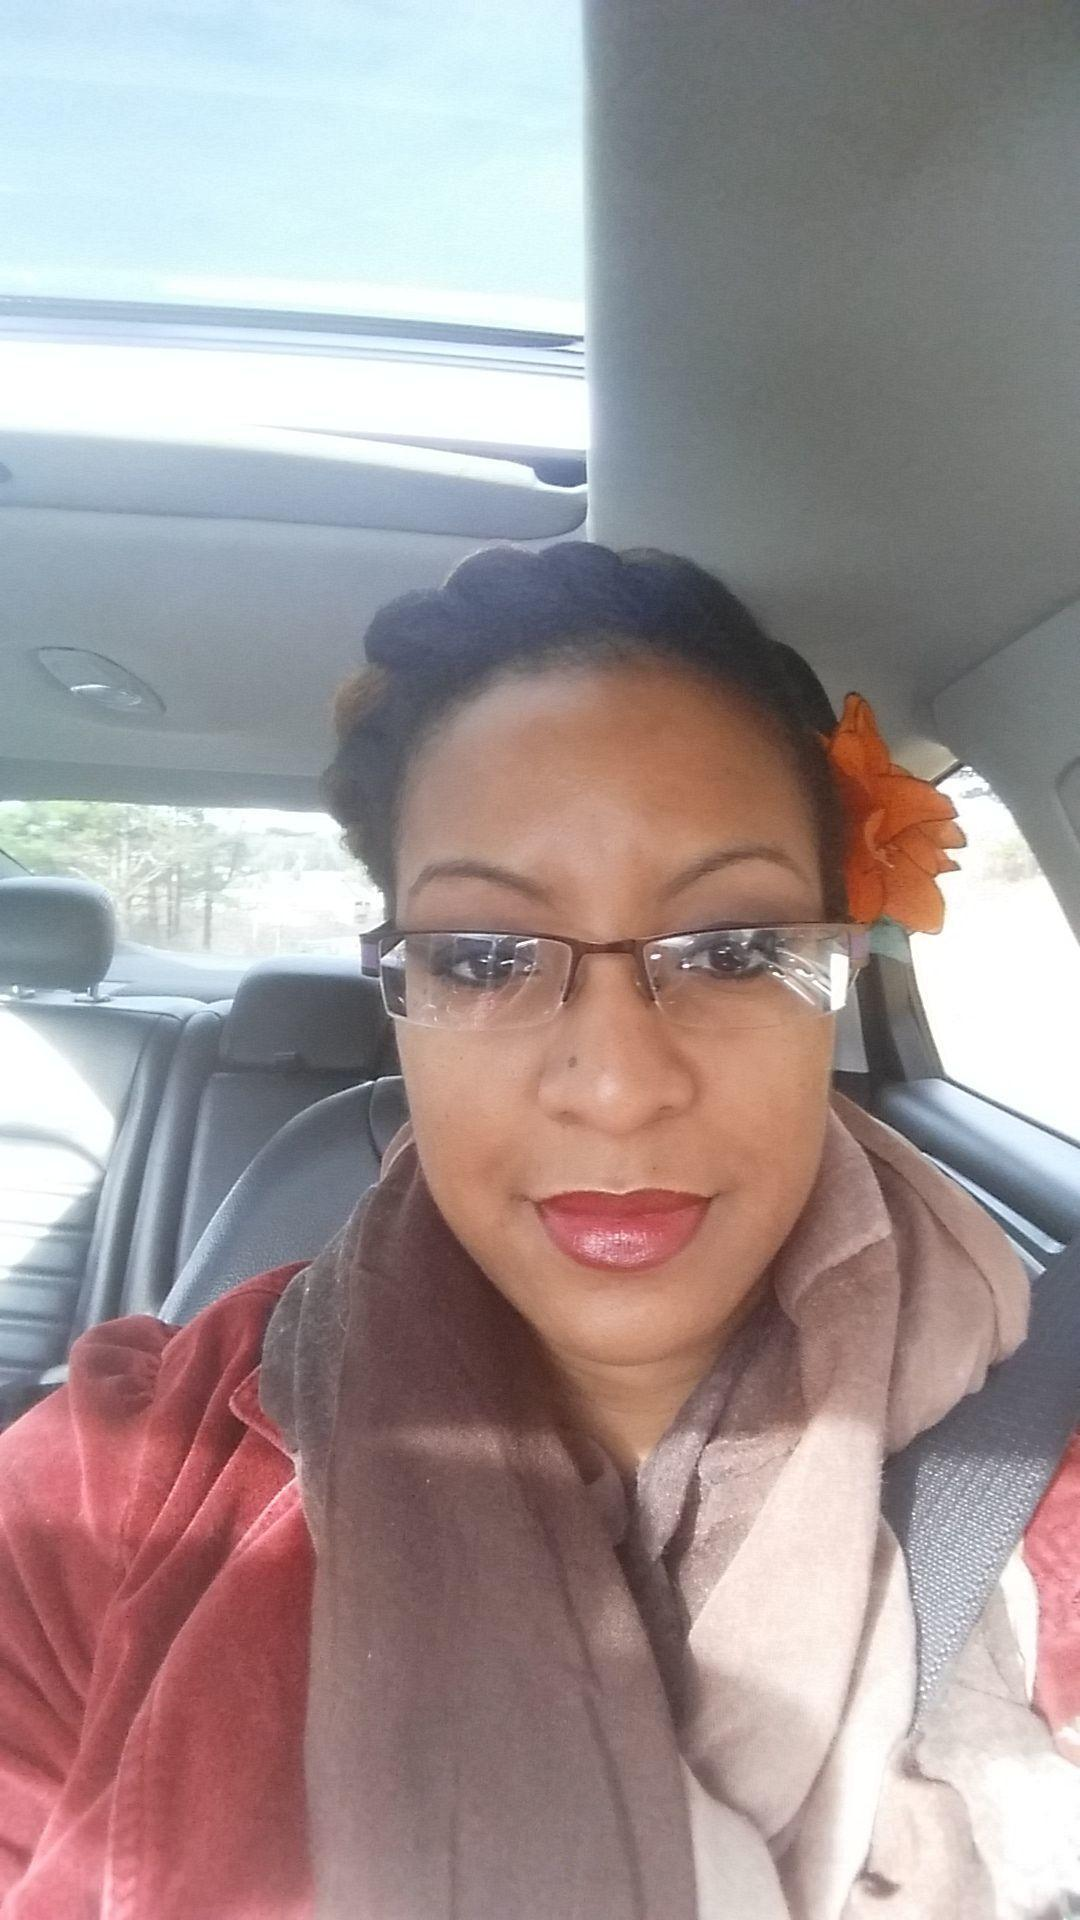 meet woodlawn singles Are you a single mom or single dad  pen pals and to bring single parents together join singleparentmeetcom and meet new single parents for friendship and dating.